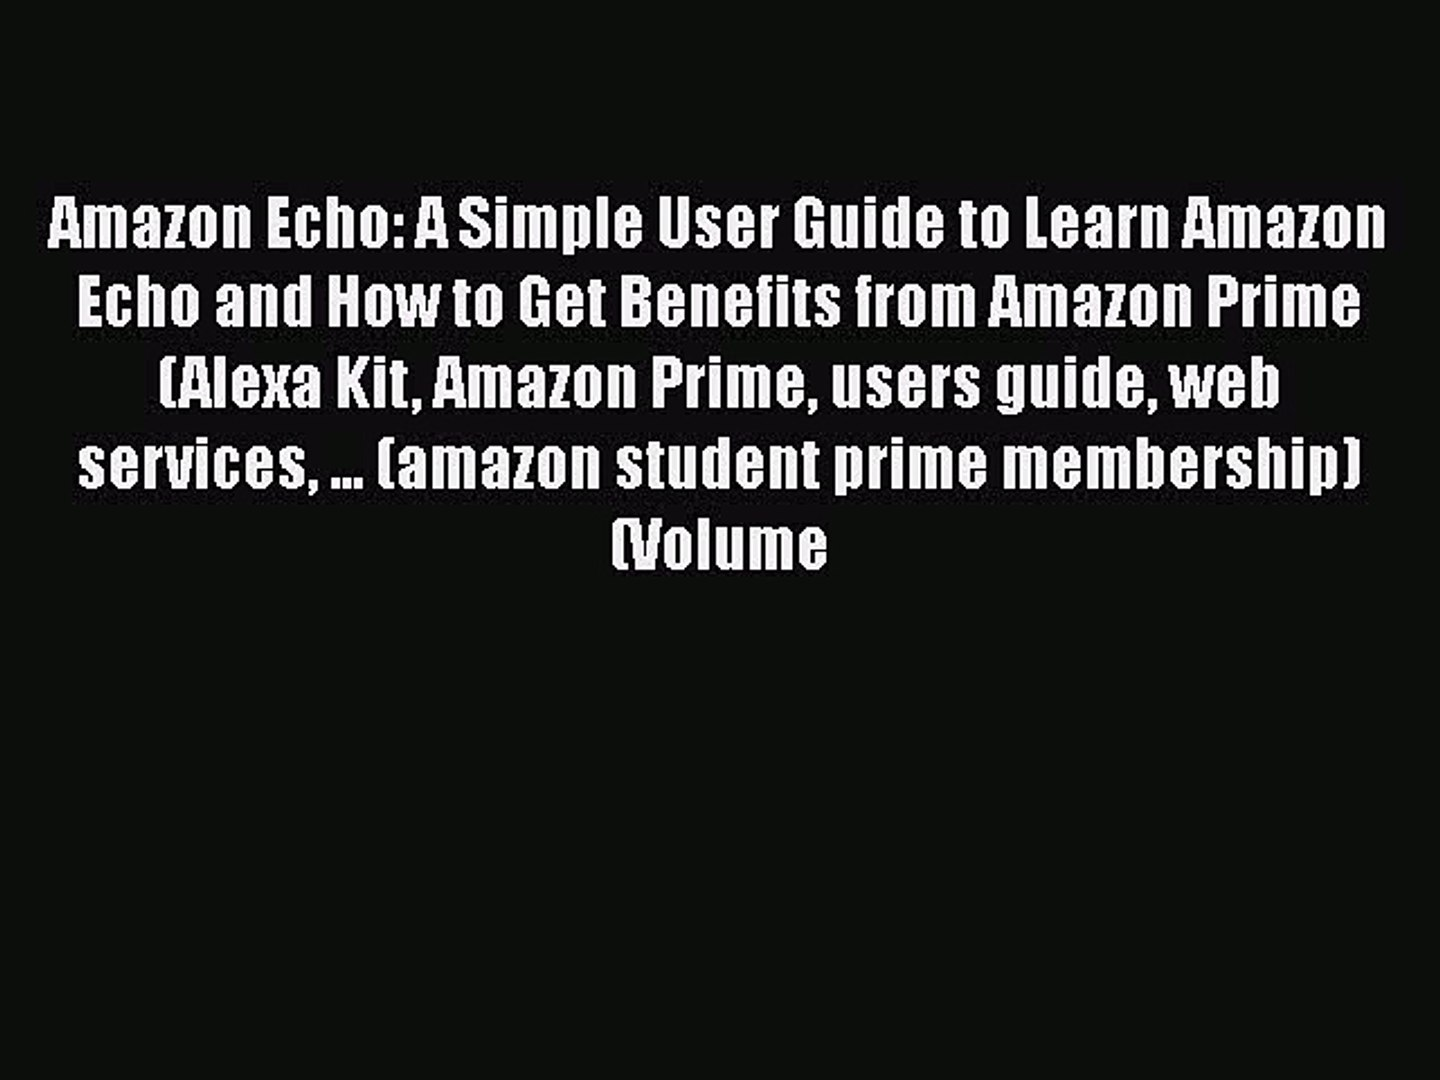 PDF Amazon Echo: A Simple User Guide to Learn Amazon Echo and How to Get Benefits from Amazon